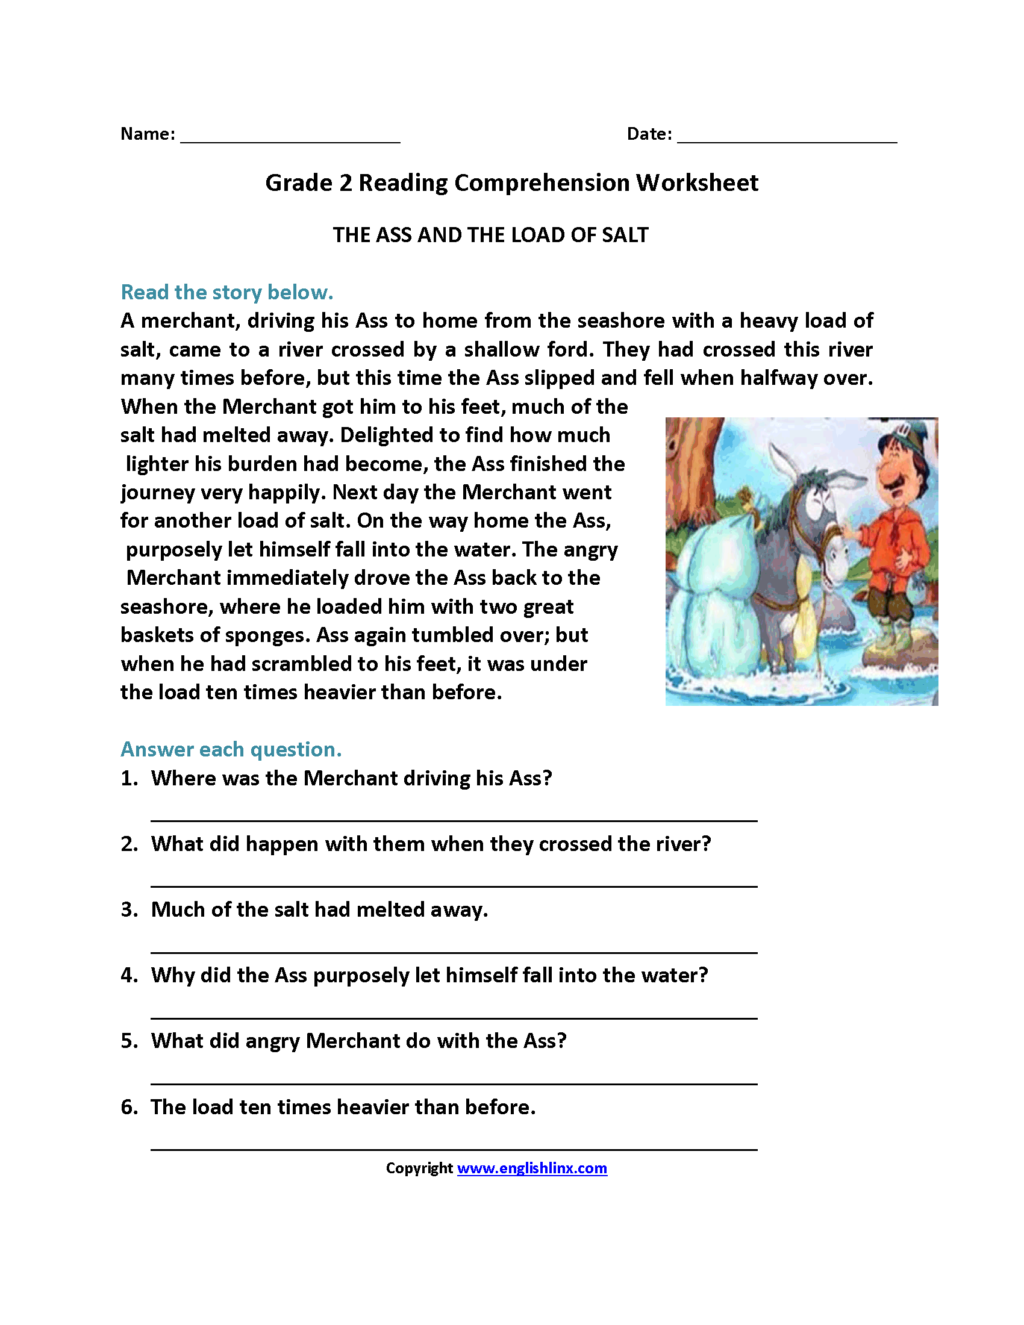 Reading Comprehension Worksheets For Grade 3 Pdf With Answers